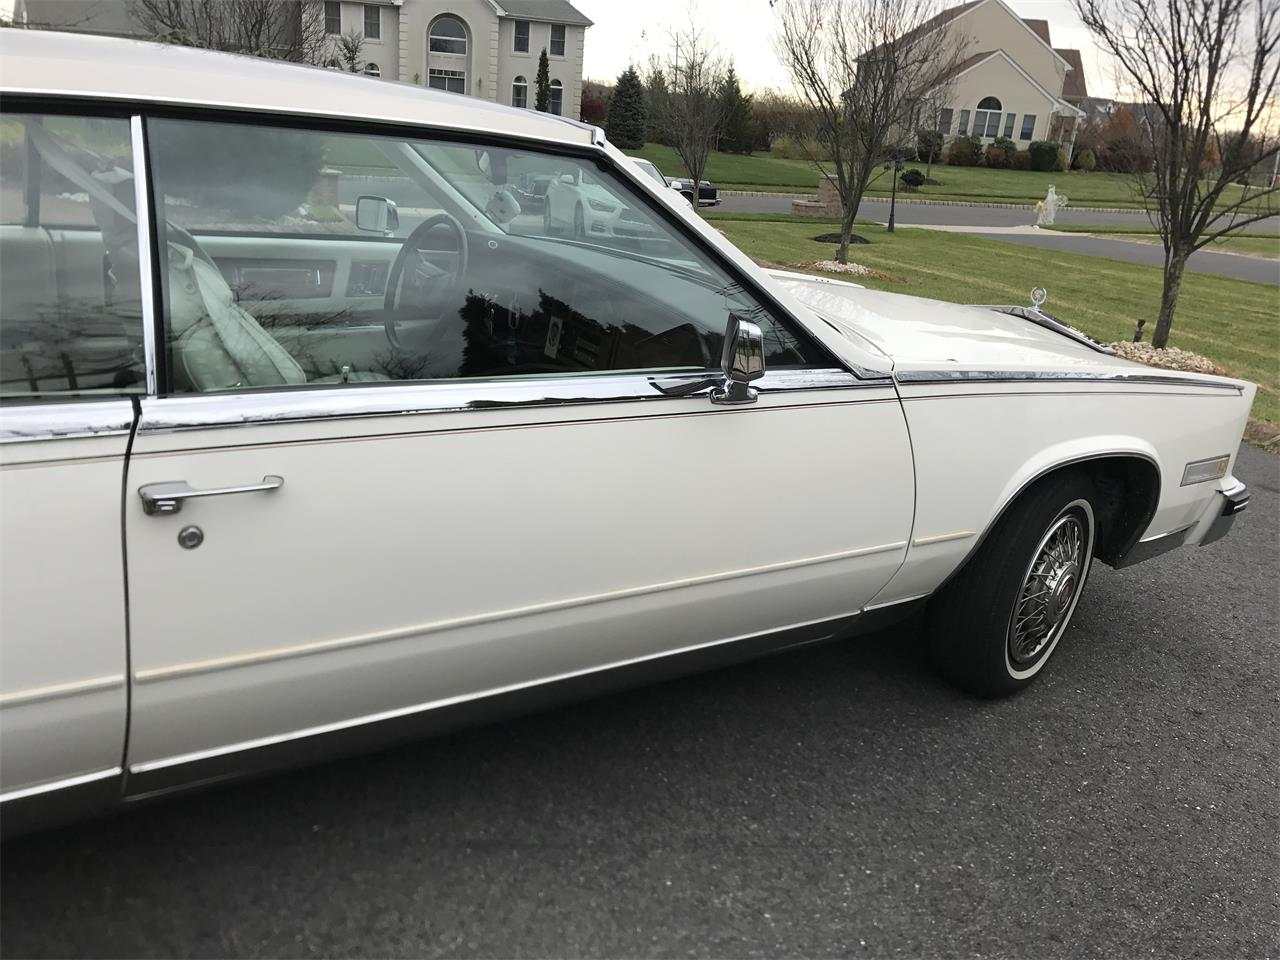 Large Picture of 1985 Eldorado Biarritz located in Freehold New Jersey - $9,500.00 Offered by a Private Seller - LHUW